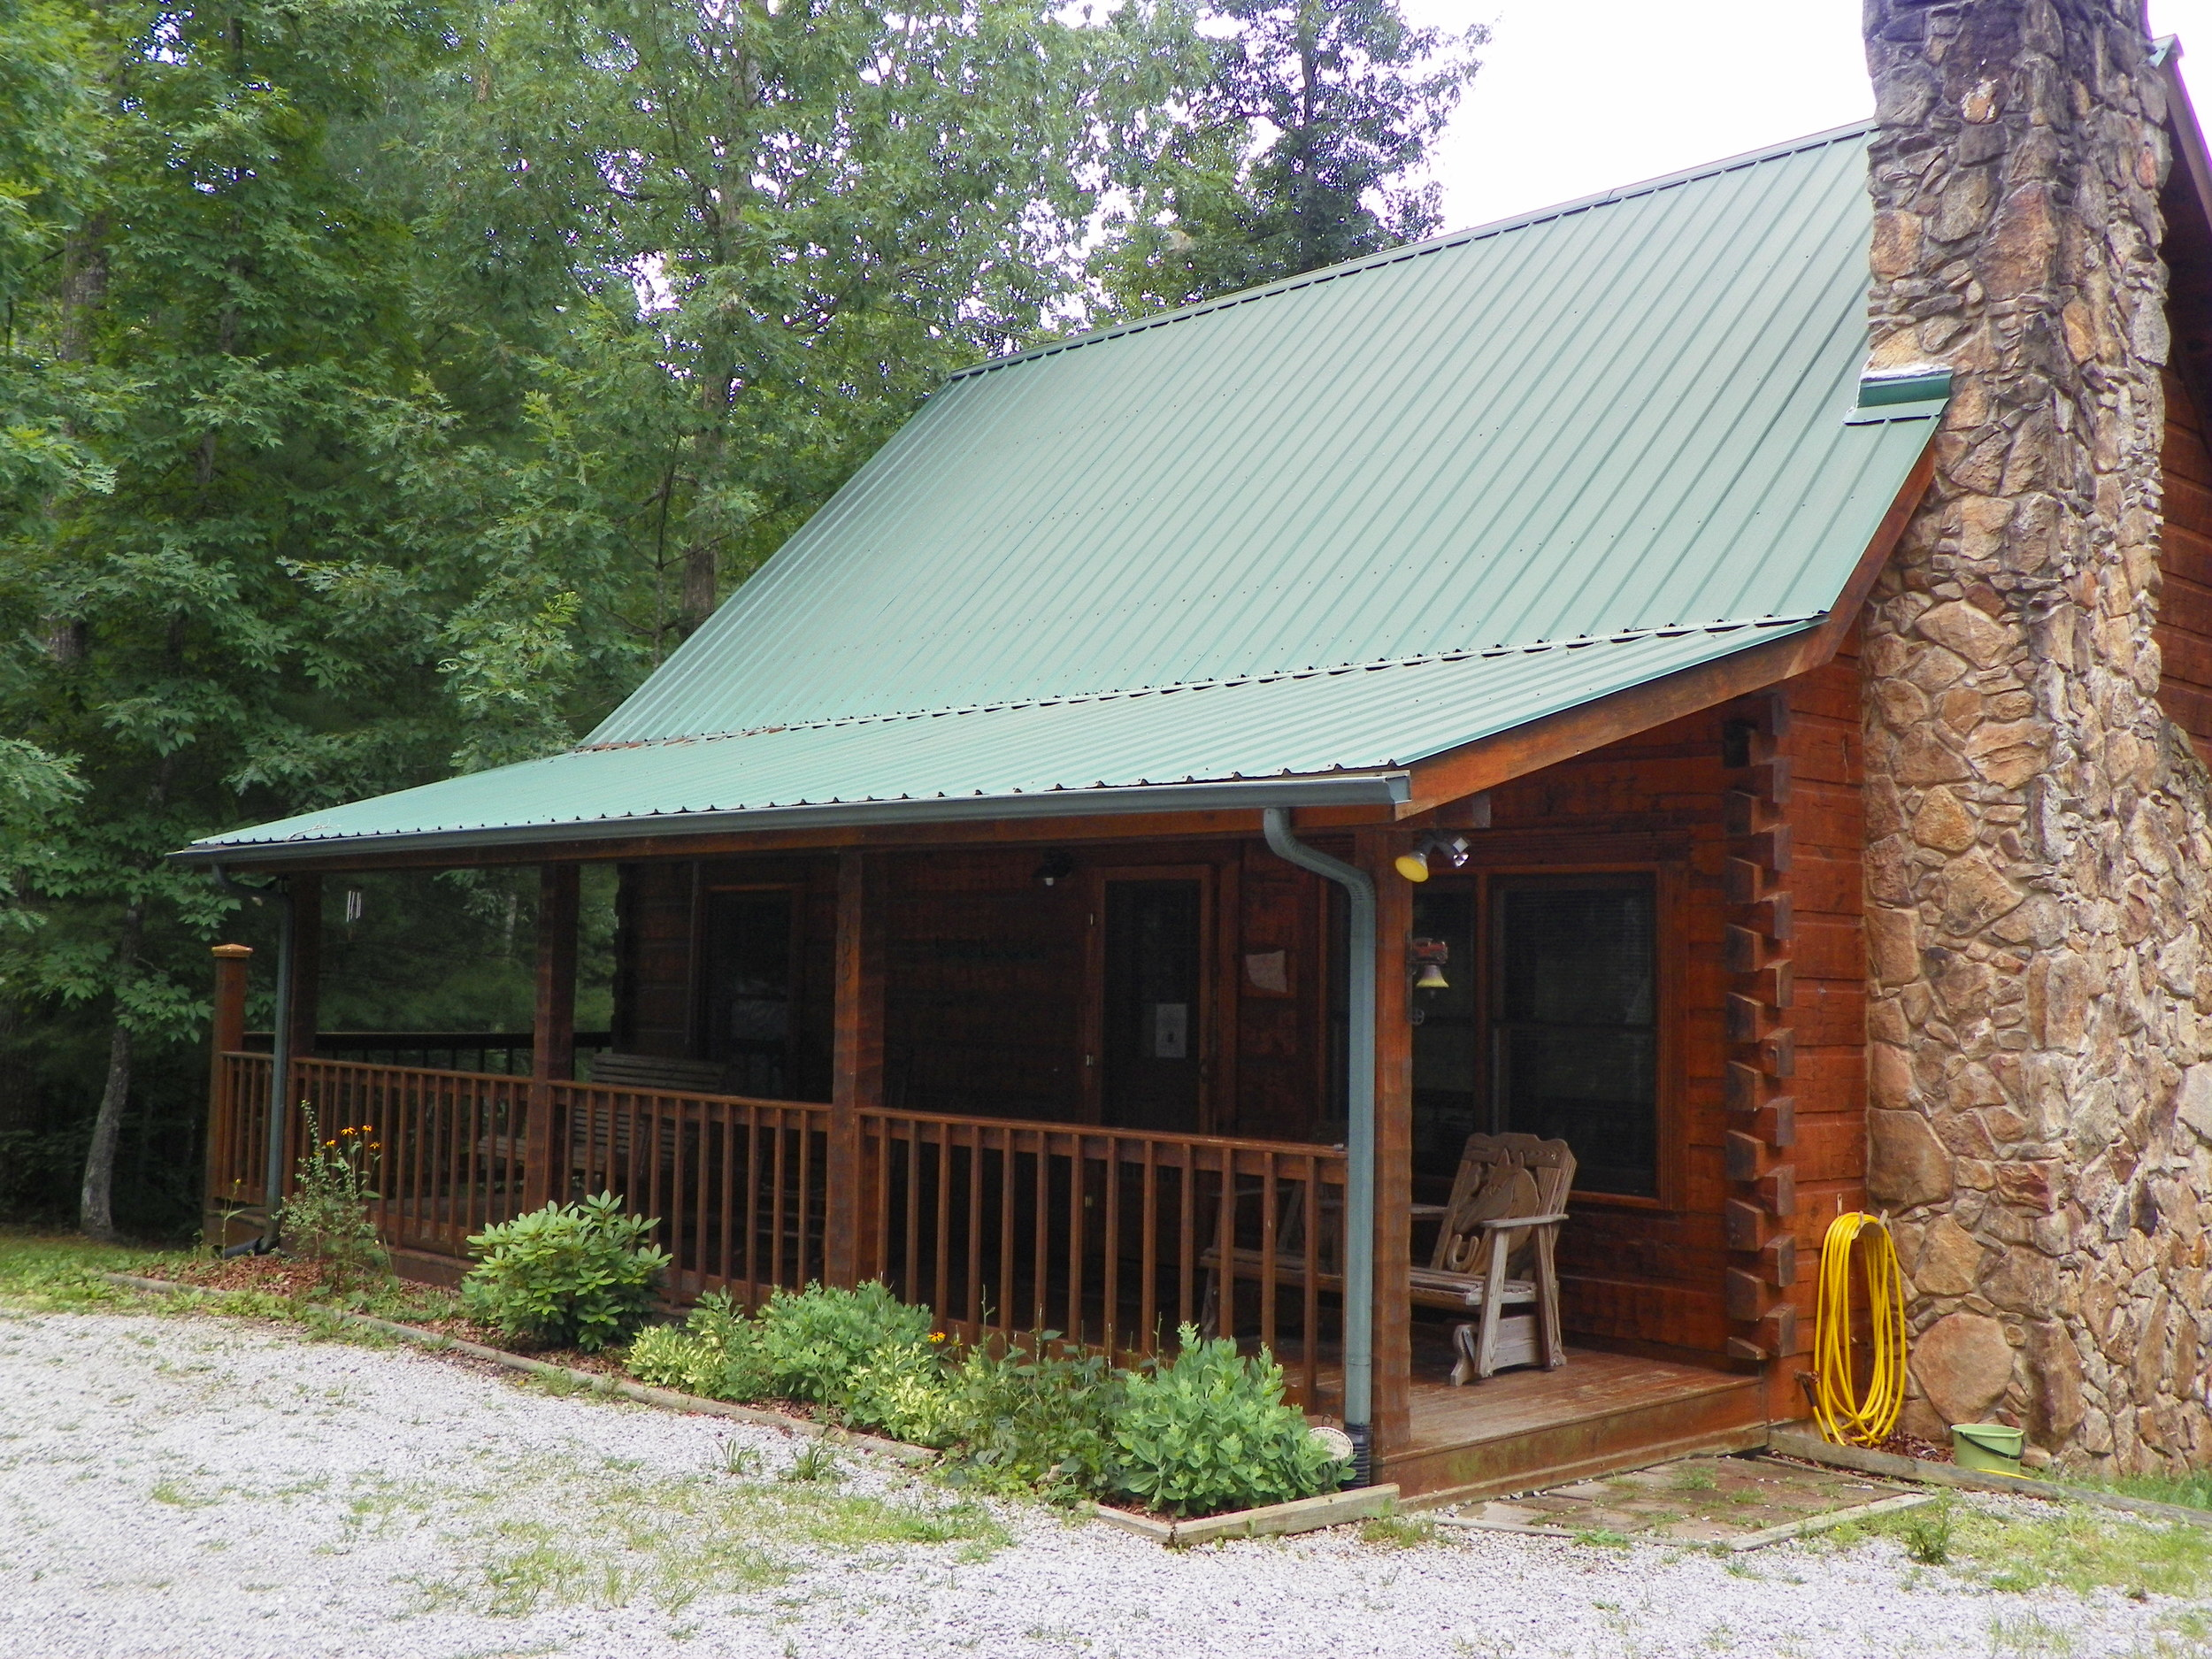 The Laurel Cove Cabin